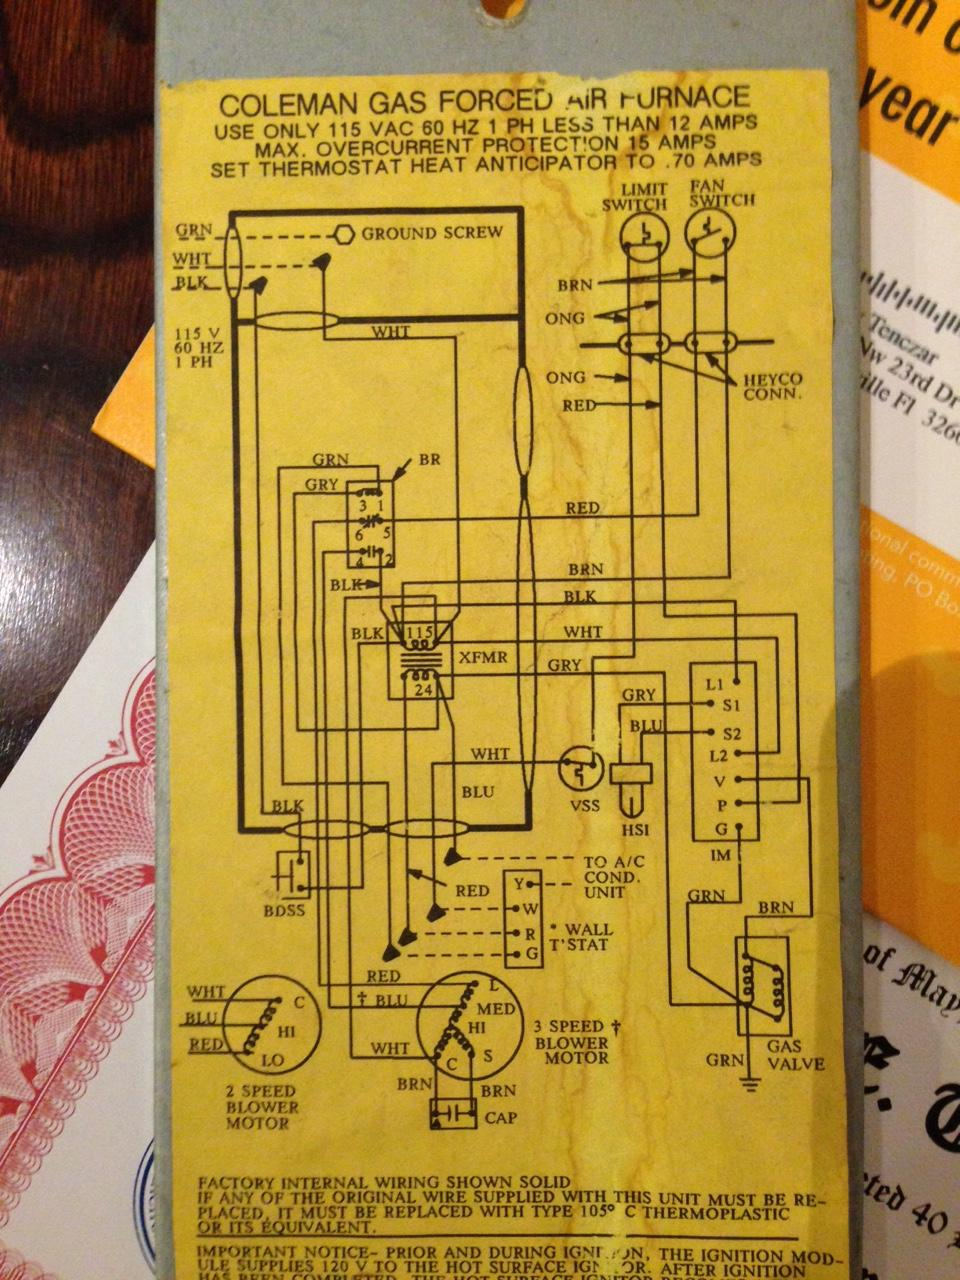 Plug Wiring Diagram Additionally How To Wire Electrical Plug Moreover